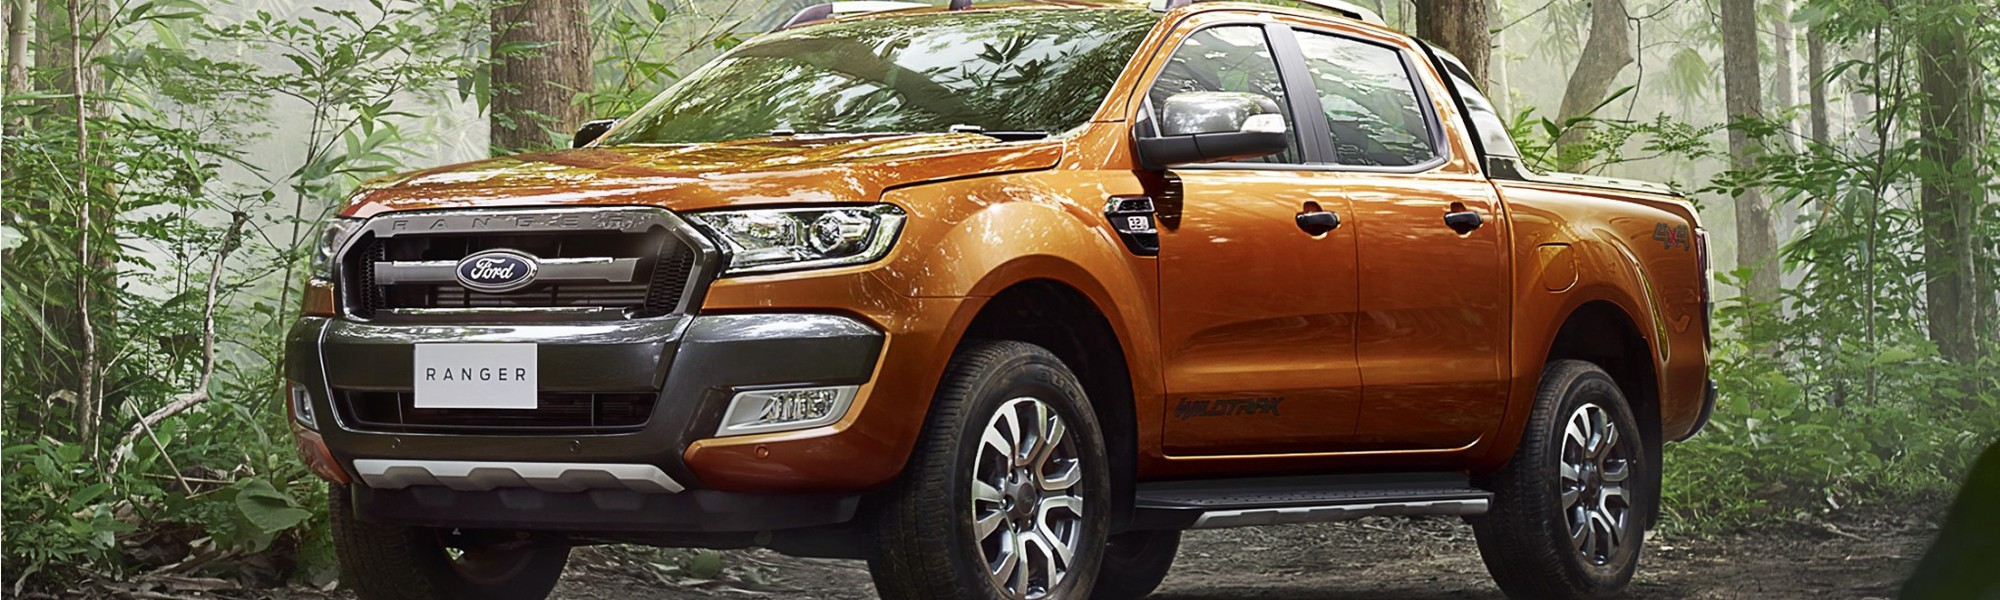 Ford Ranger Pickup